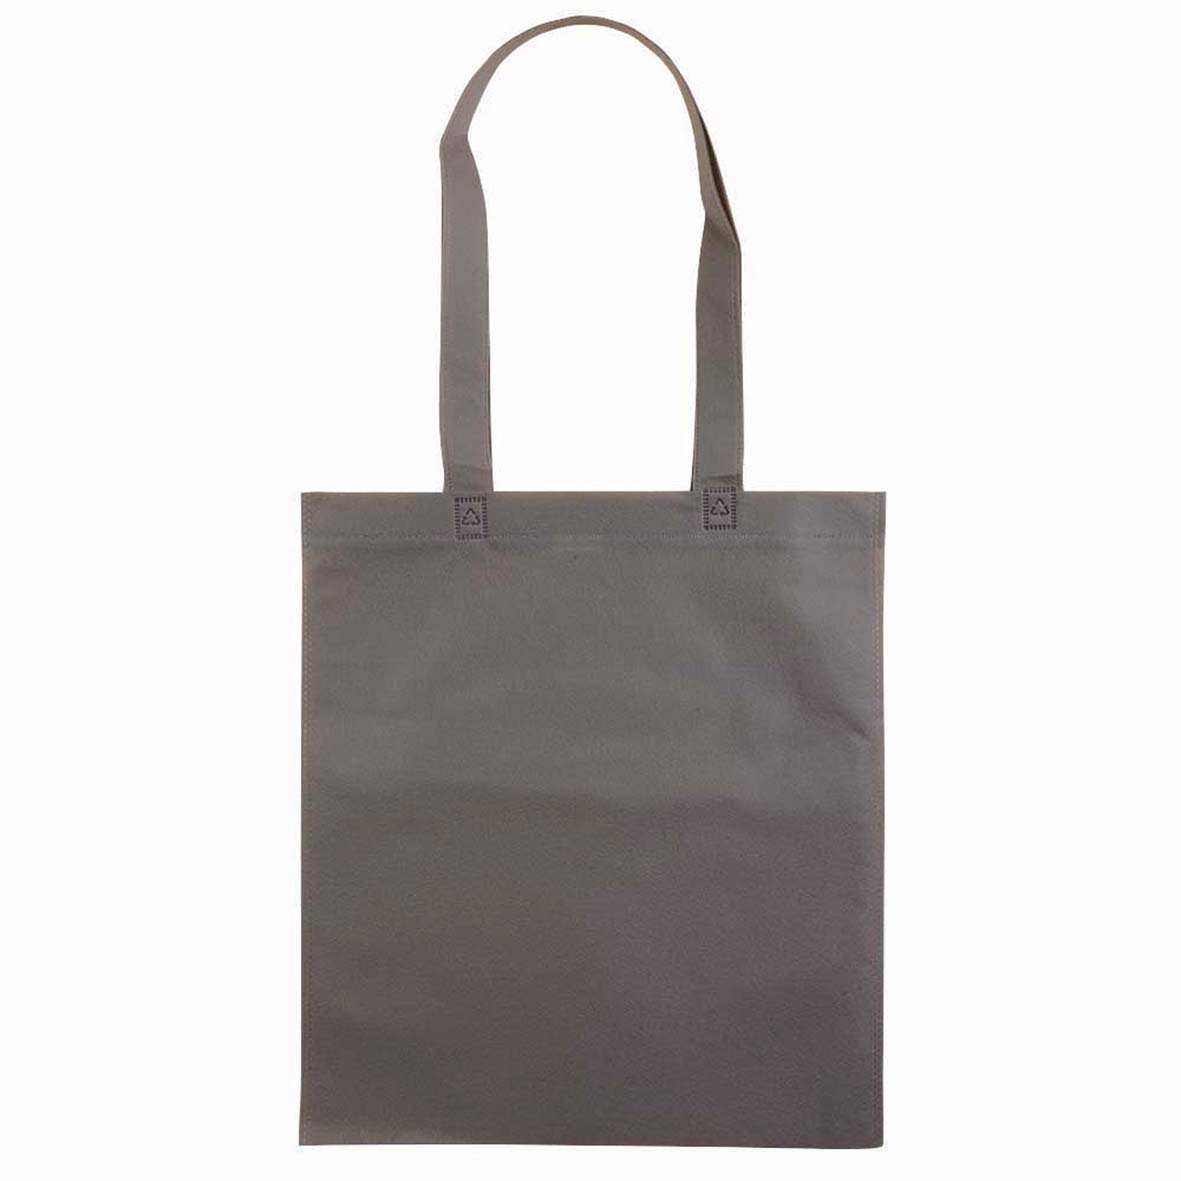 TNT all purpose bag - Grey gb-246 gy